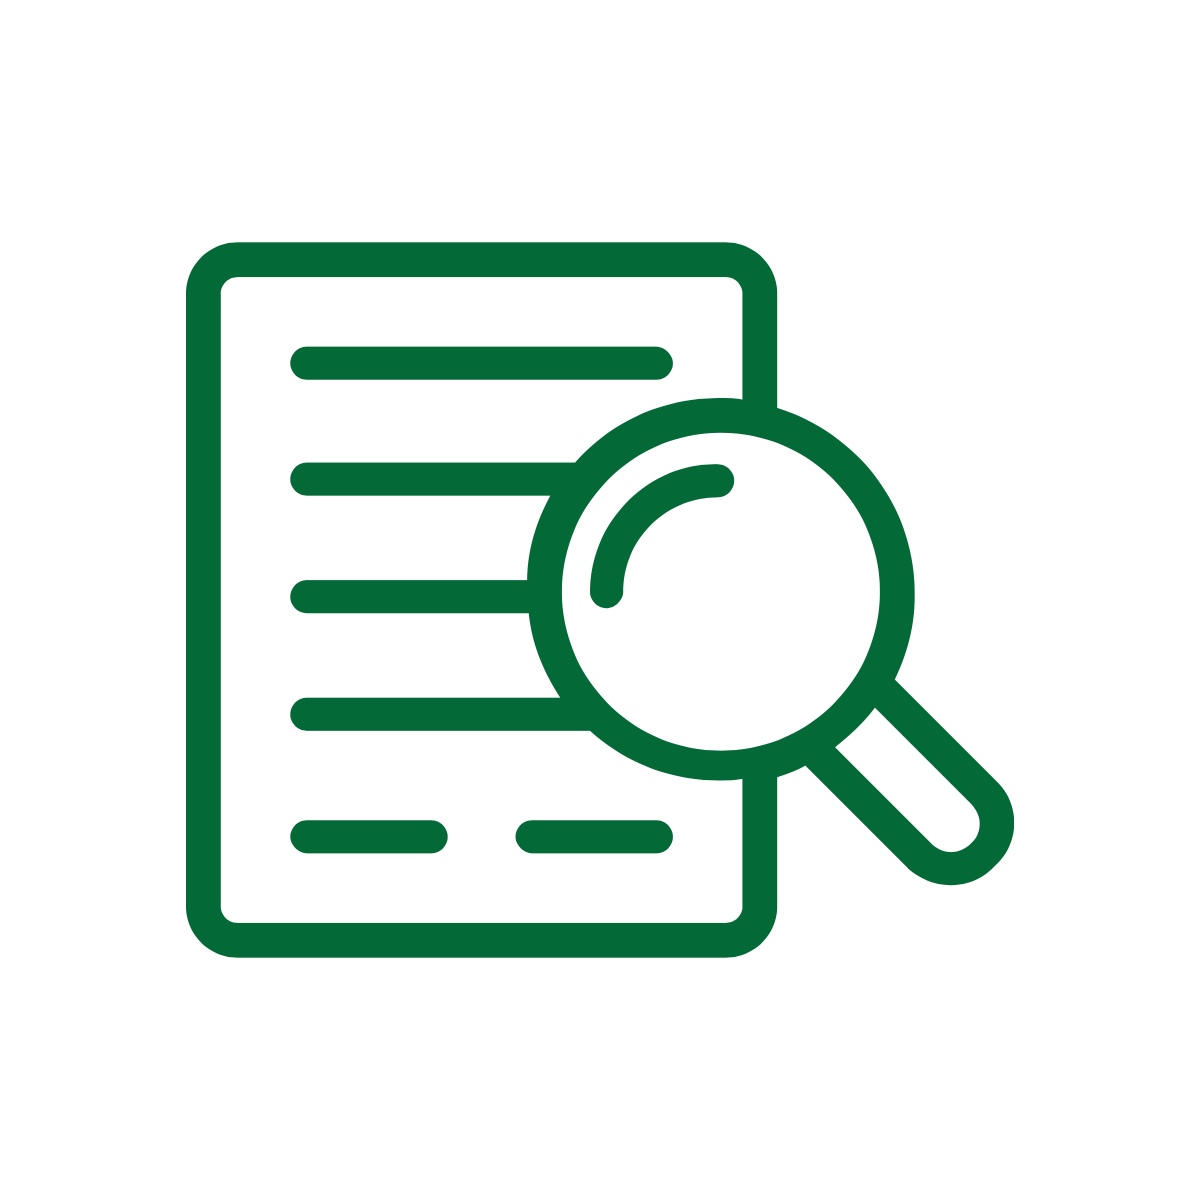 Green document icon from Noun Project